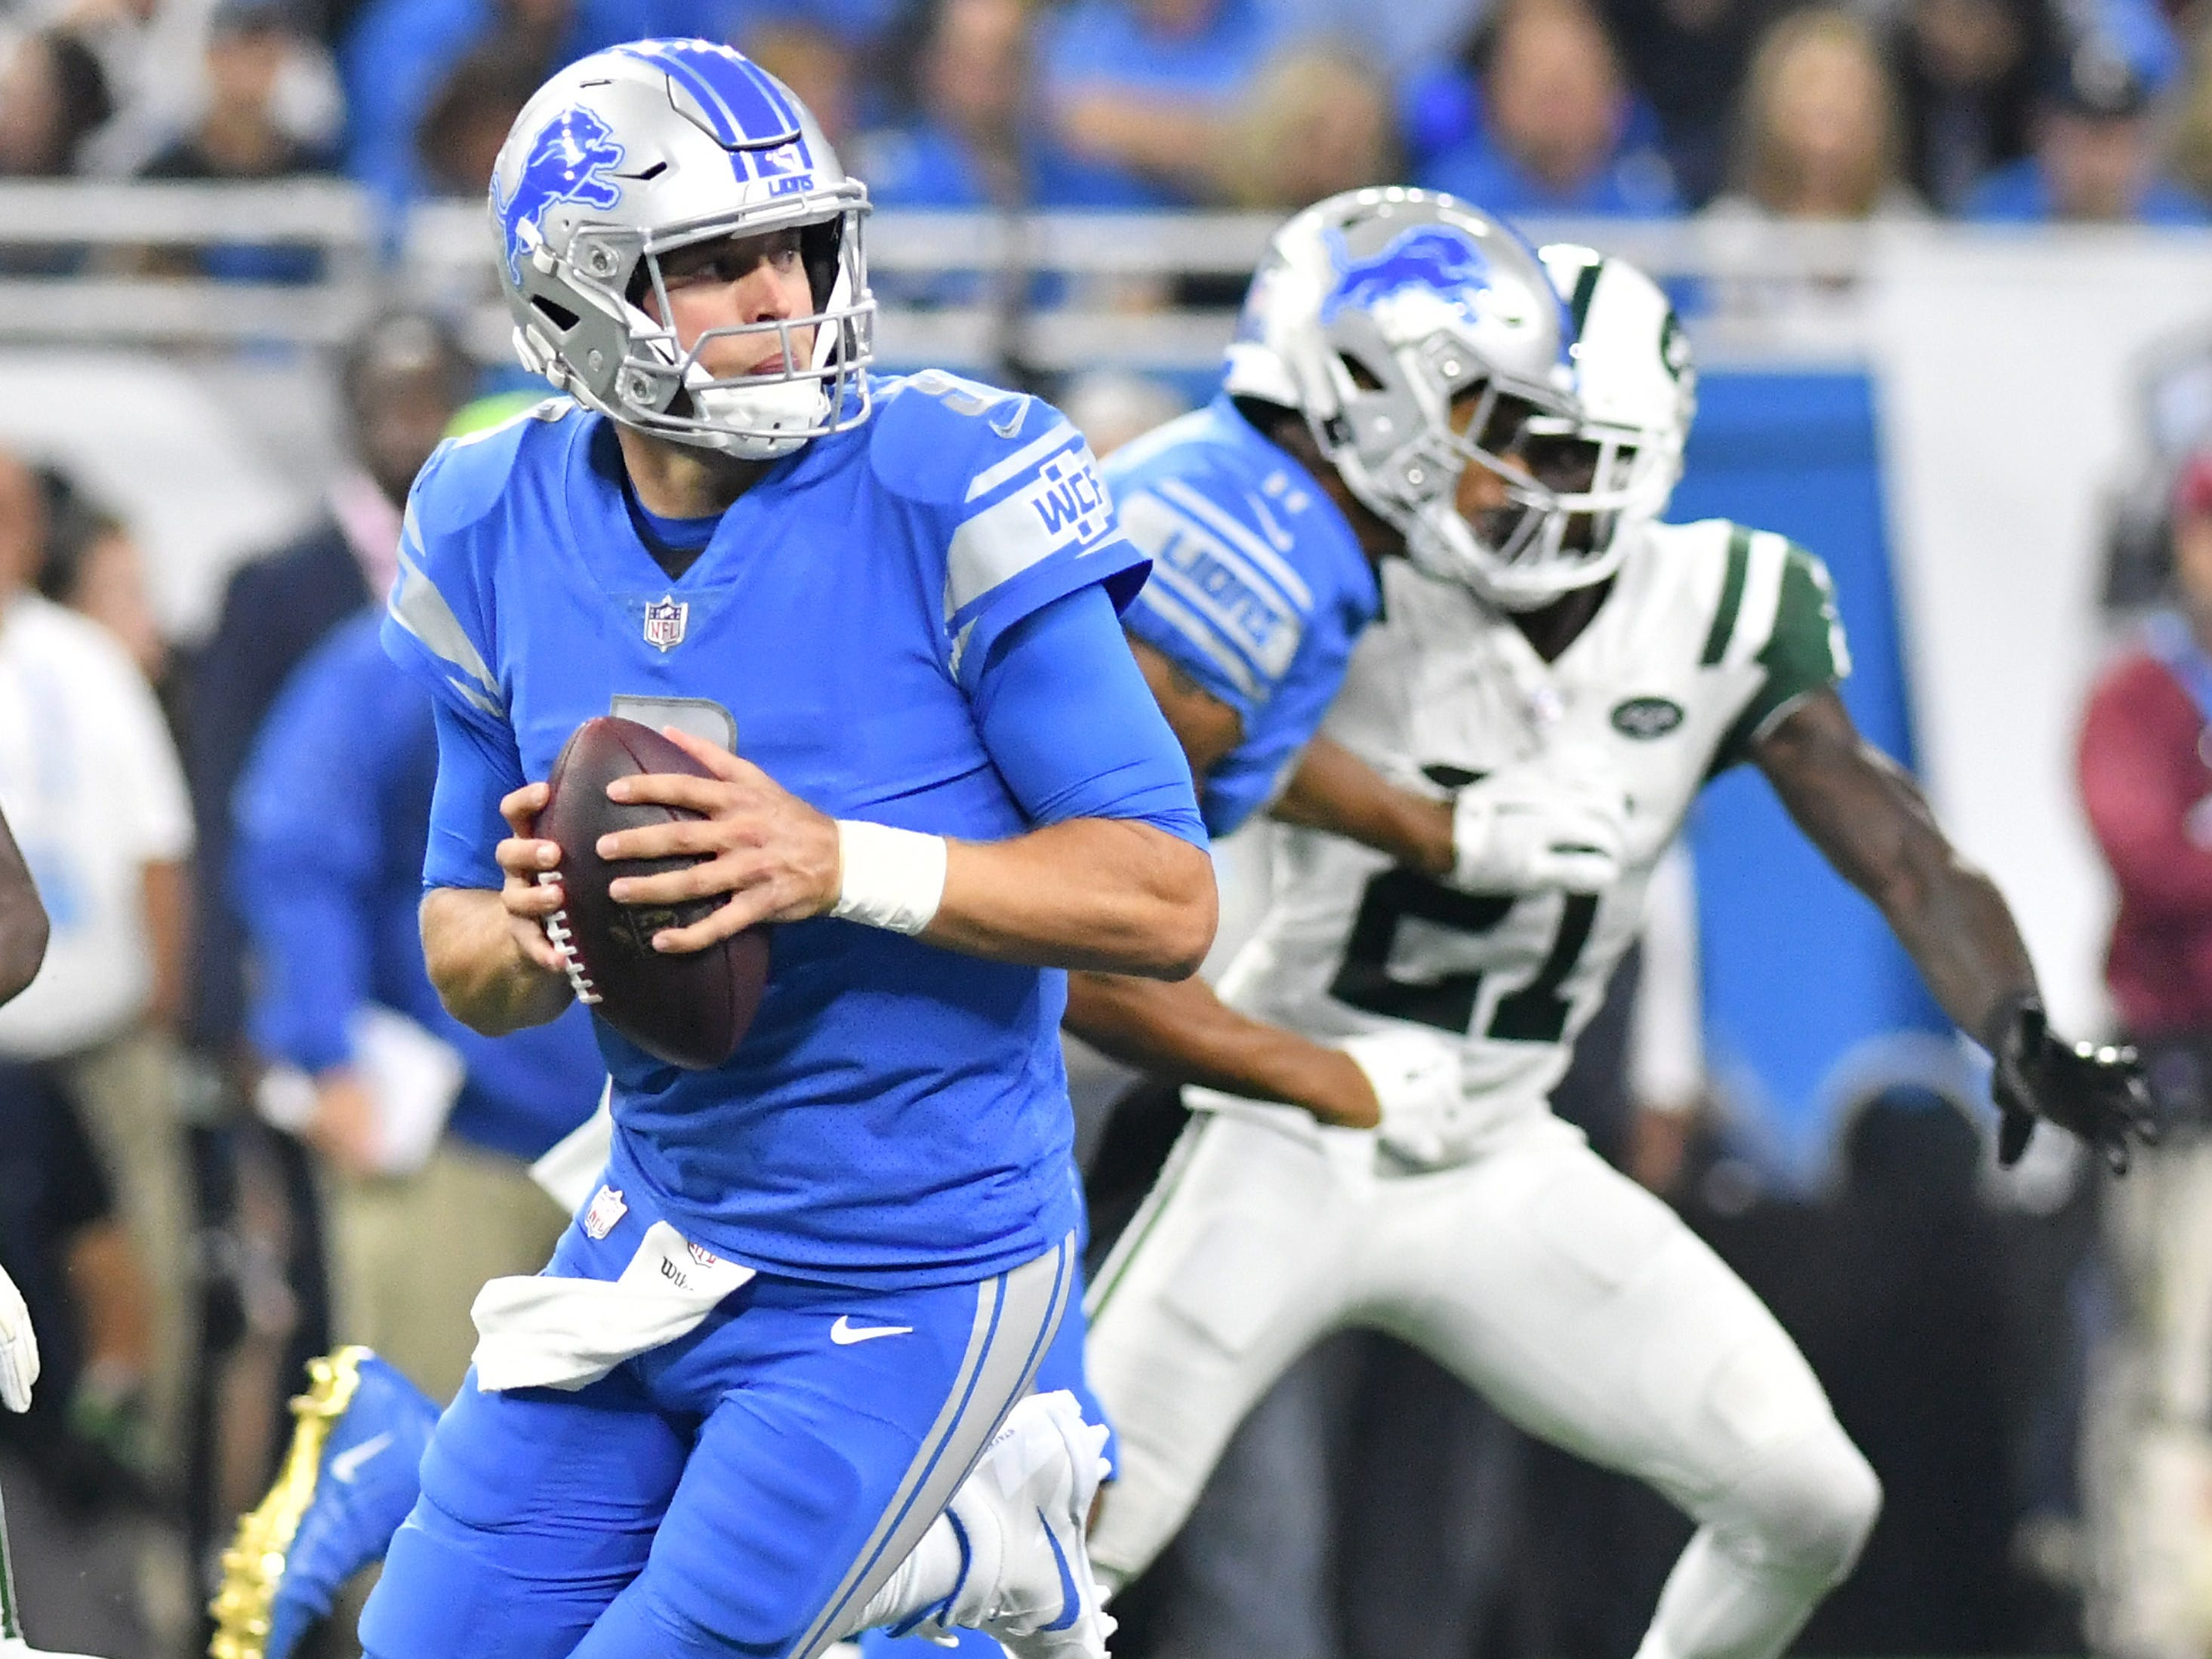 Lions quarterback Matthew Stafford scrambles in the first half.